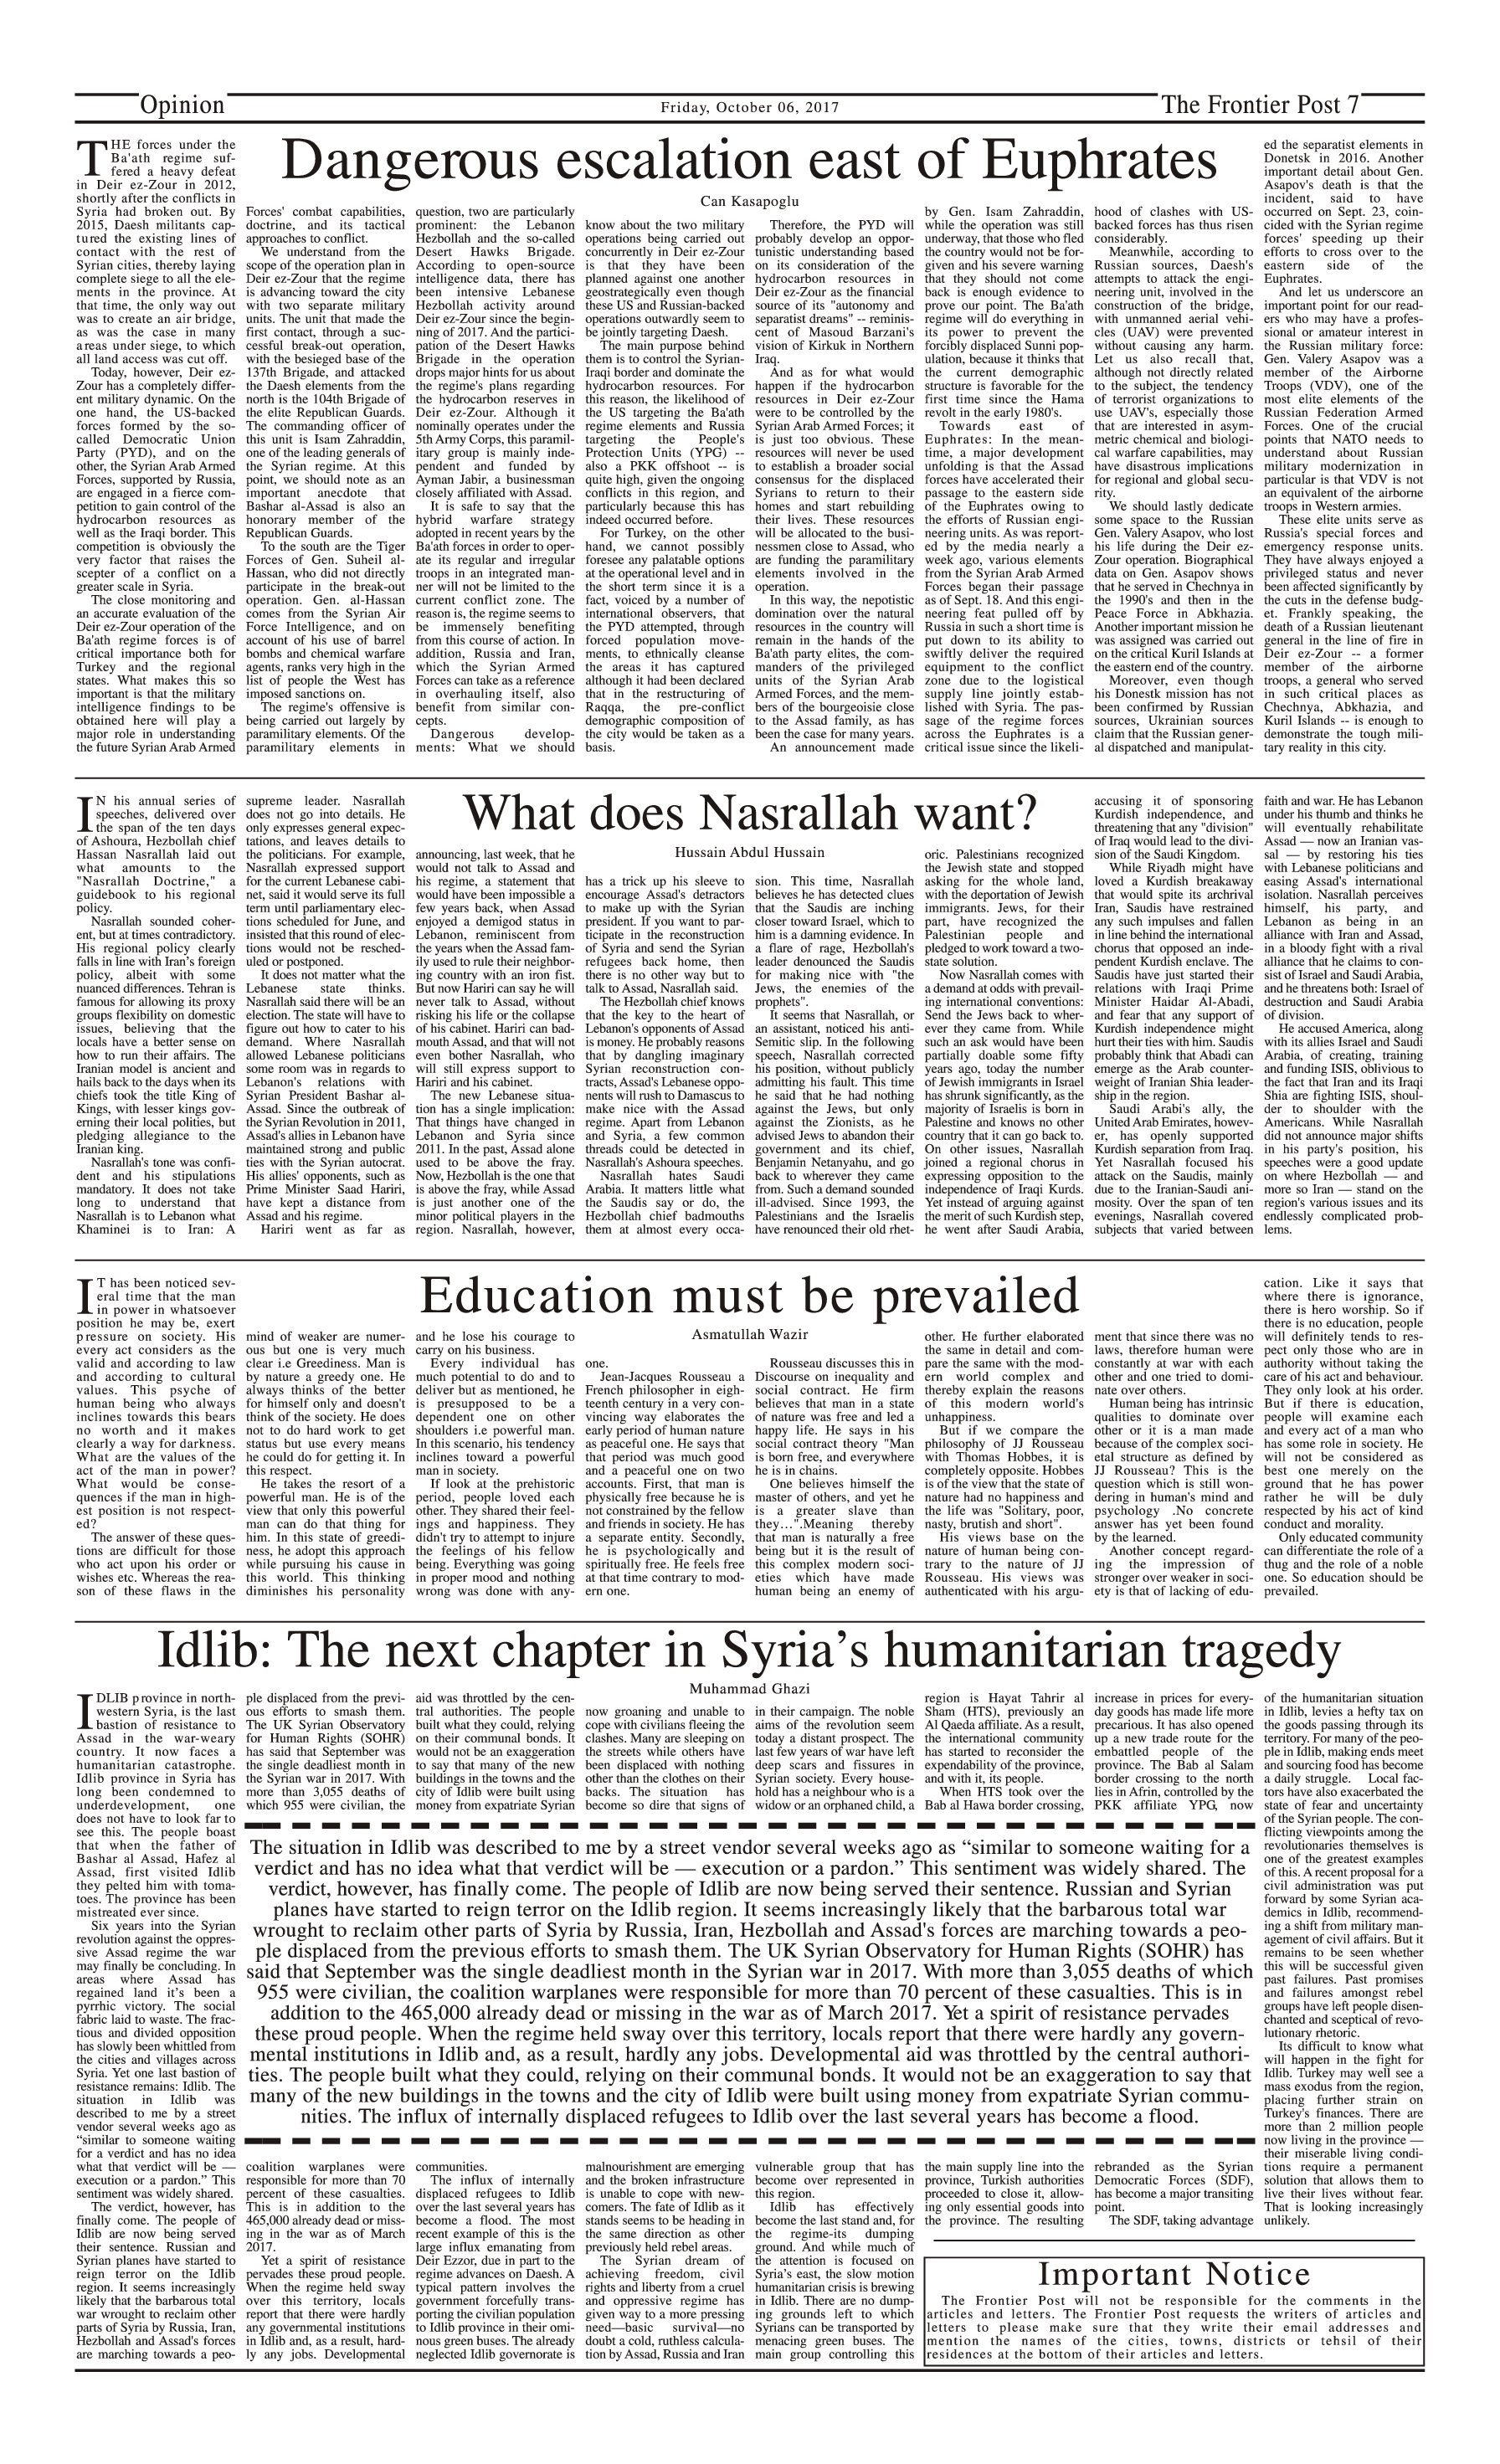 Opinion Page 6-10